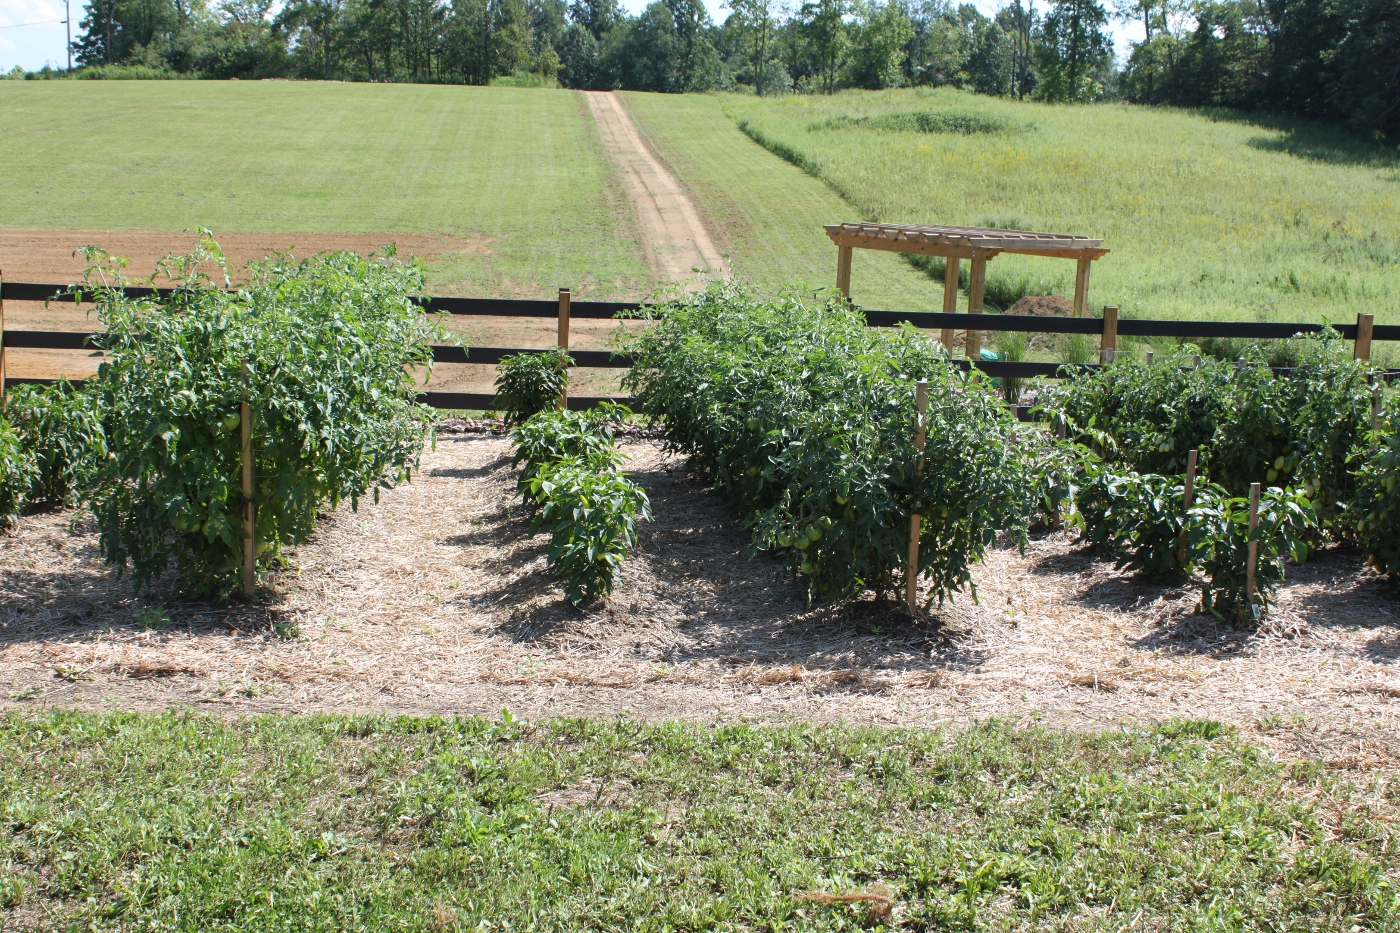 How To Build The Ultimate Tomato Cage For Under 2 The